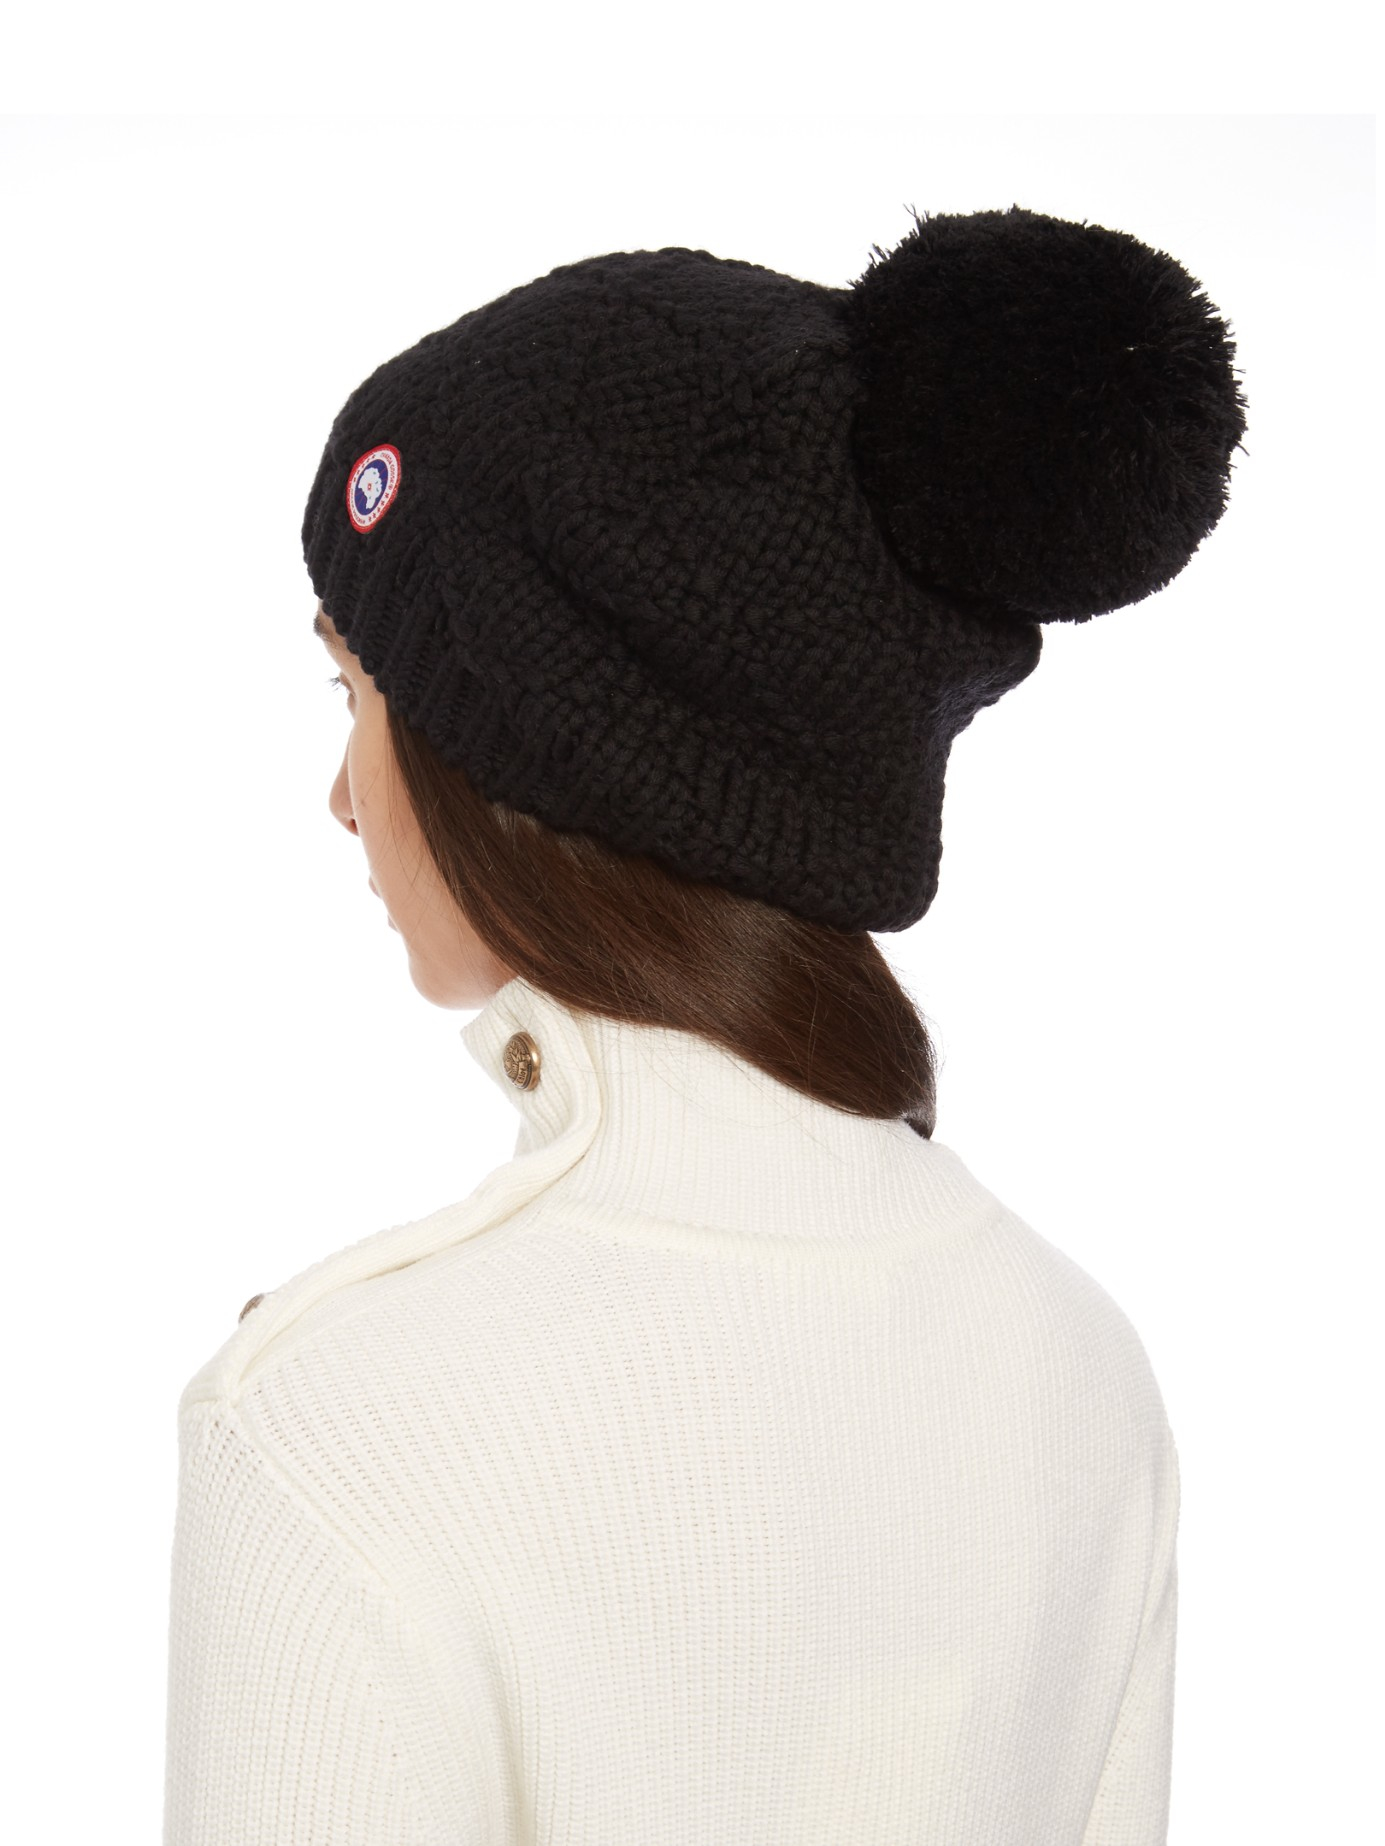 d0bf67a35a3 Canada Goose Pompom Cable Knit Beanie Hat in Black - Lyst